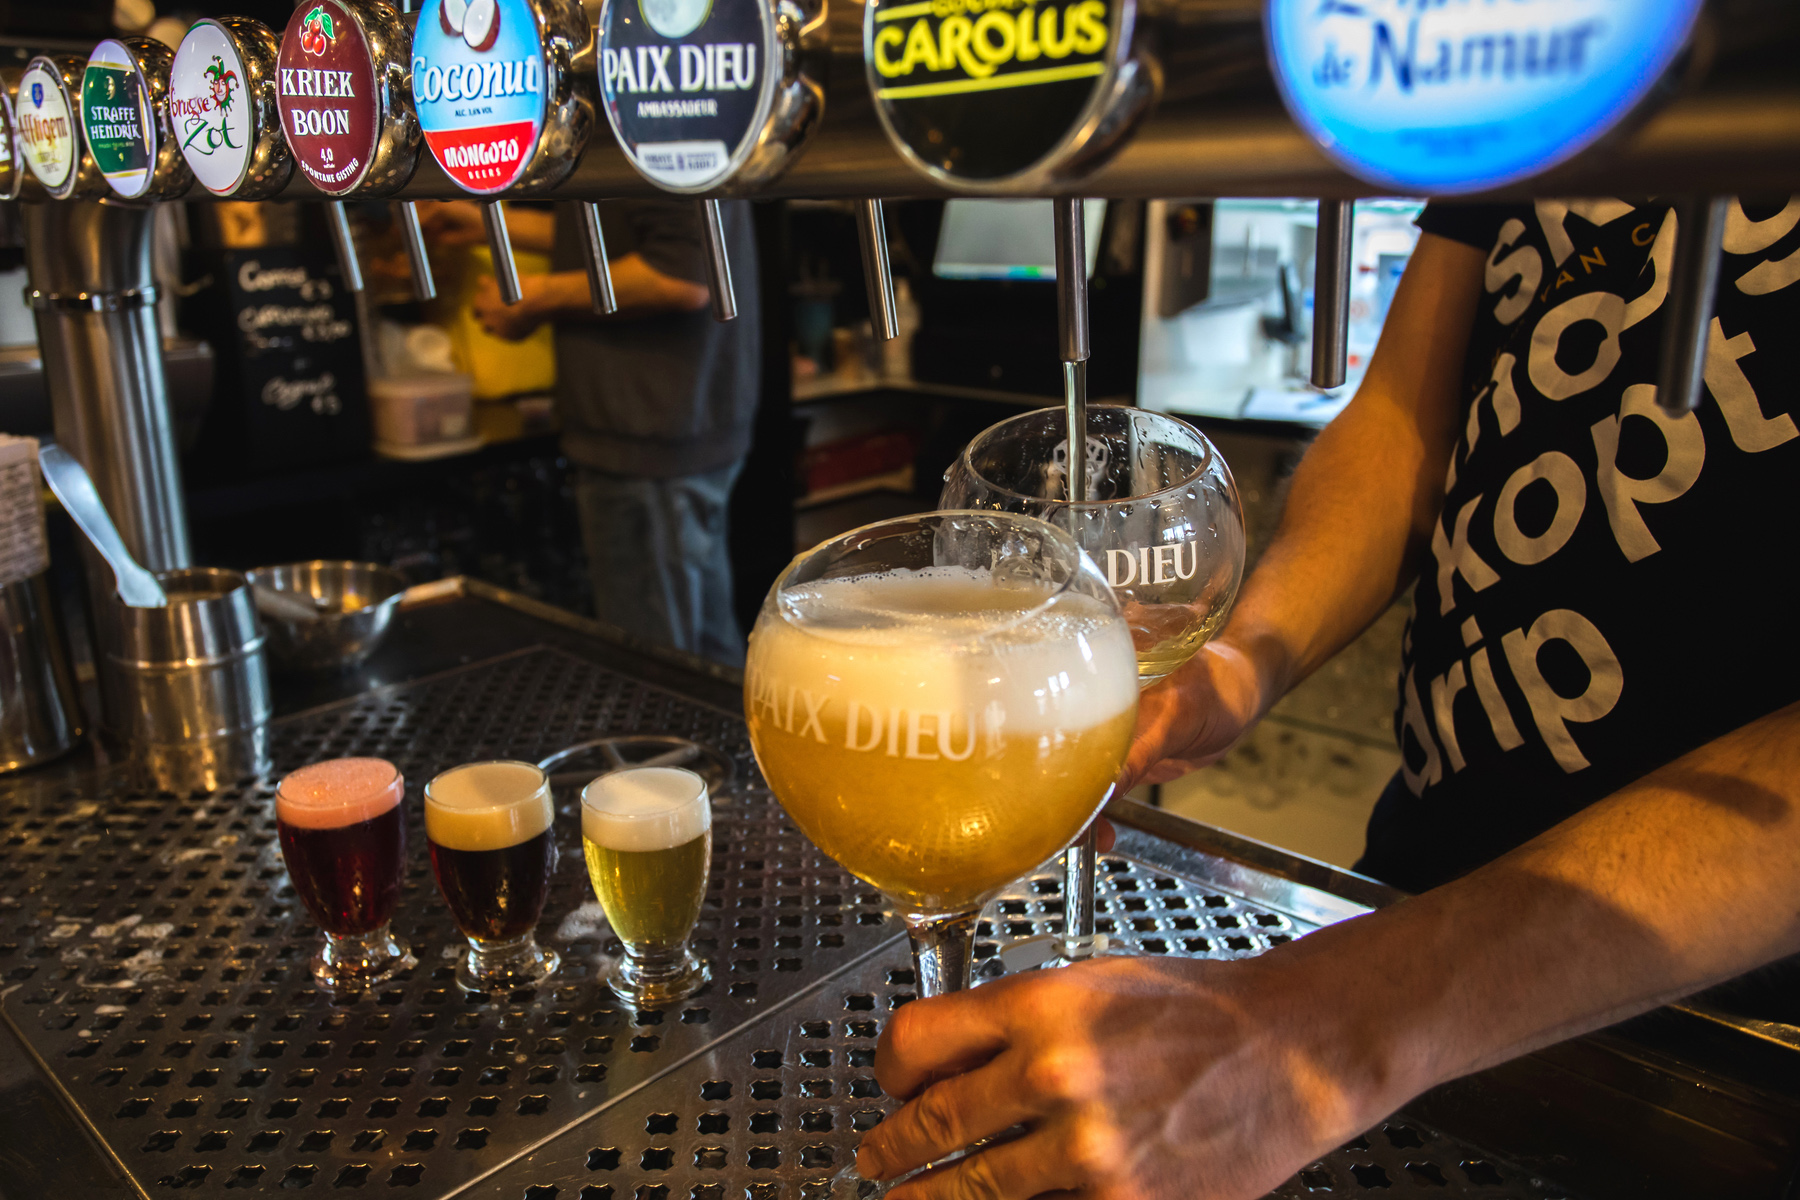 A variety of Belgian beers on draught